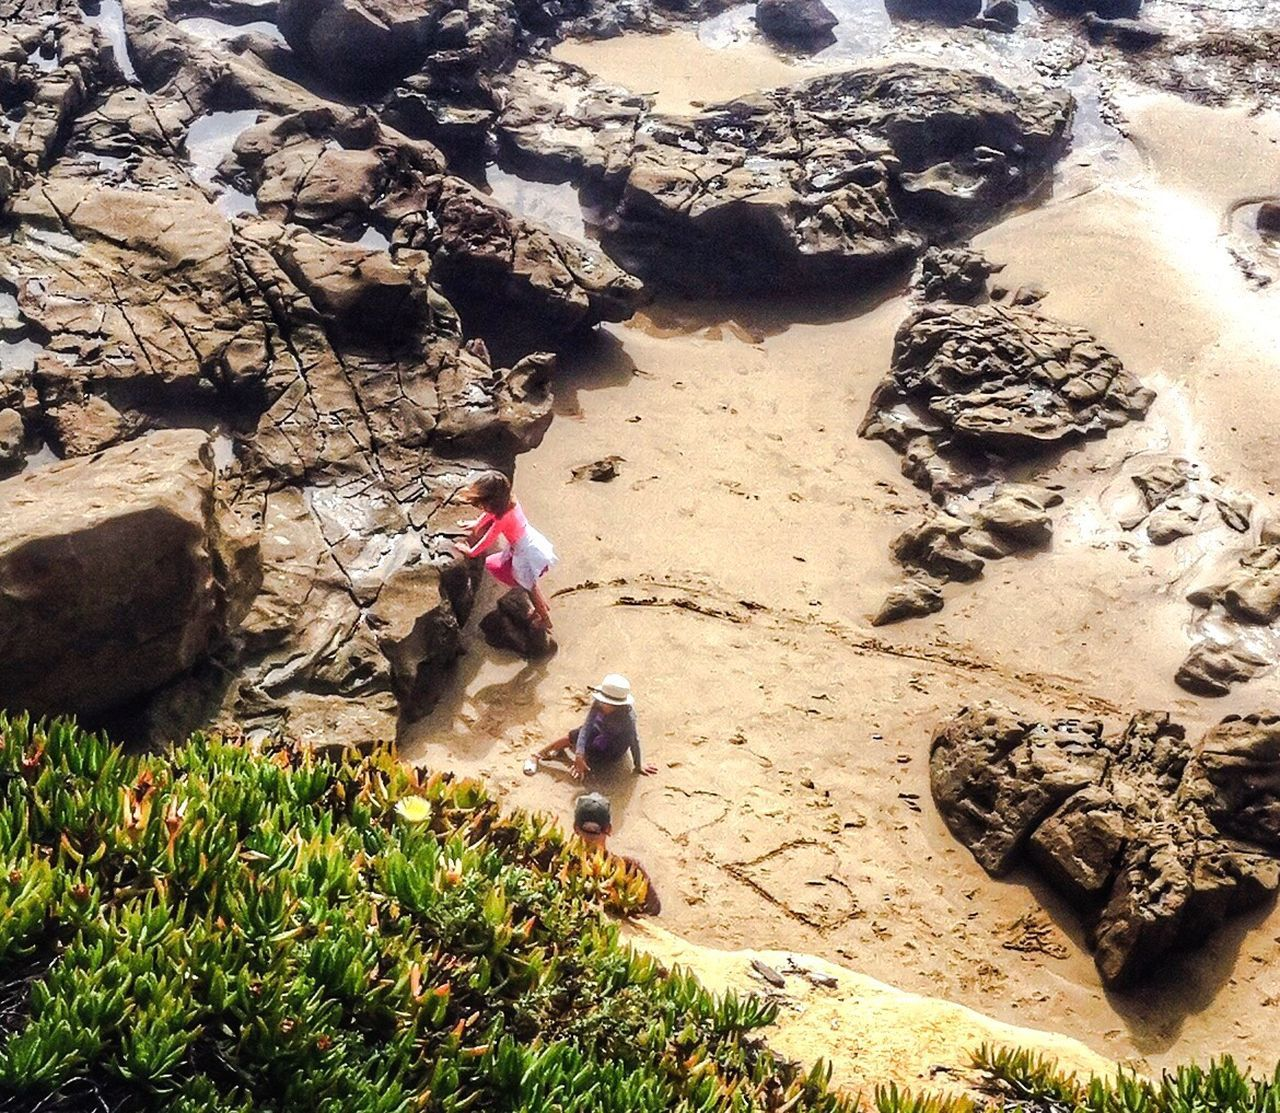 The world needs more ❤️ Hearts♡hearts Beach Photography Seasand And Rocks Kids Having Fun Holiday POV Heart Shape Drawing In The Sand  Beachfun Kids On The Beach Love